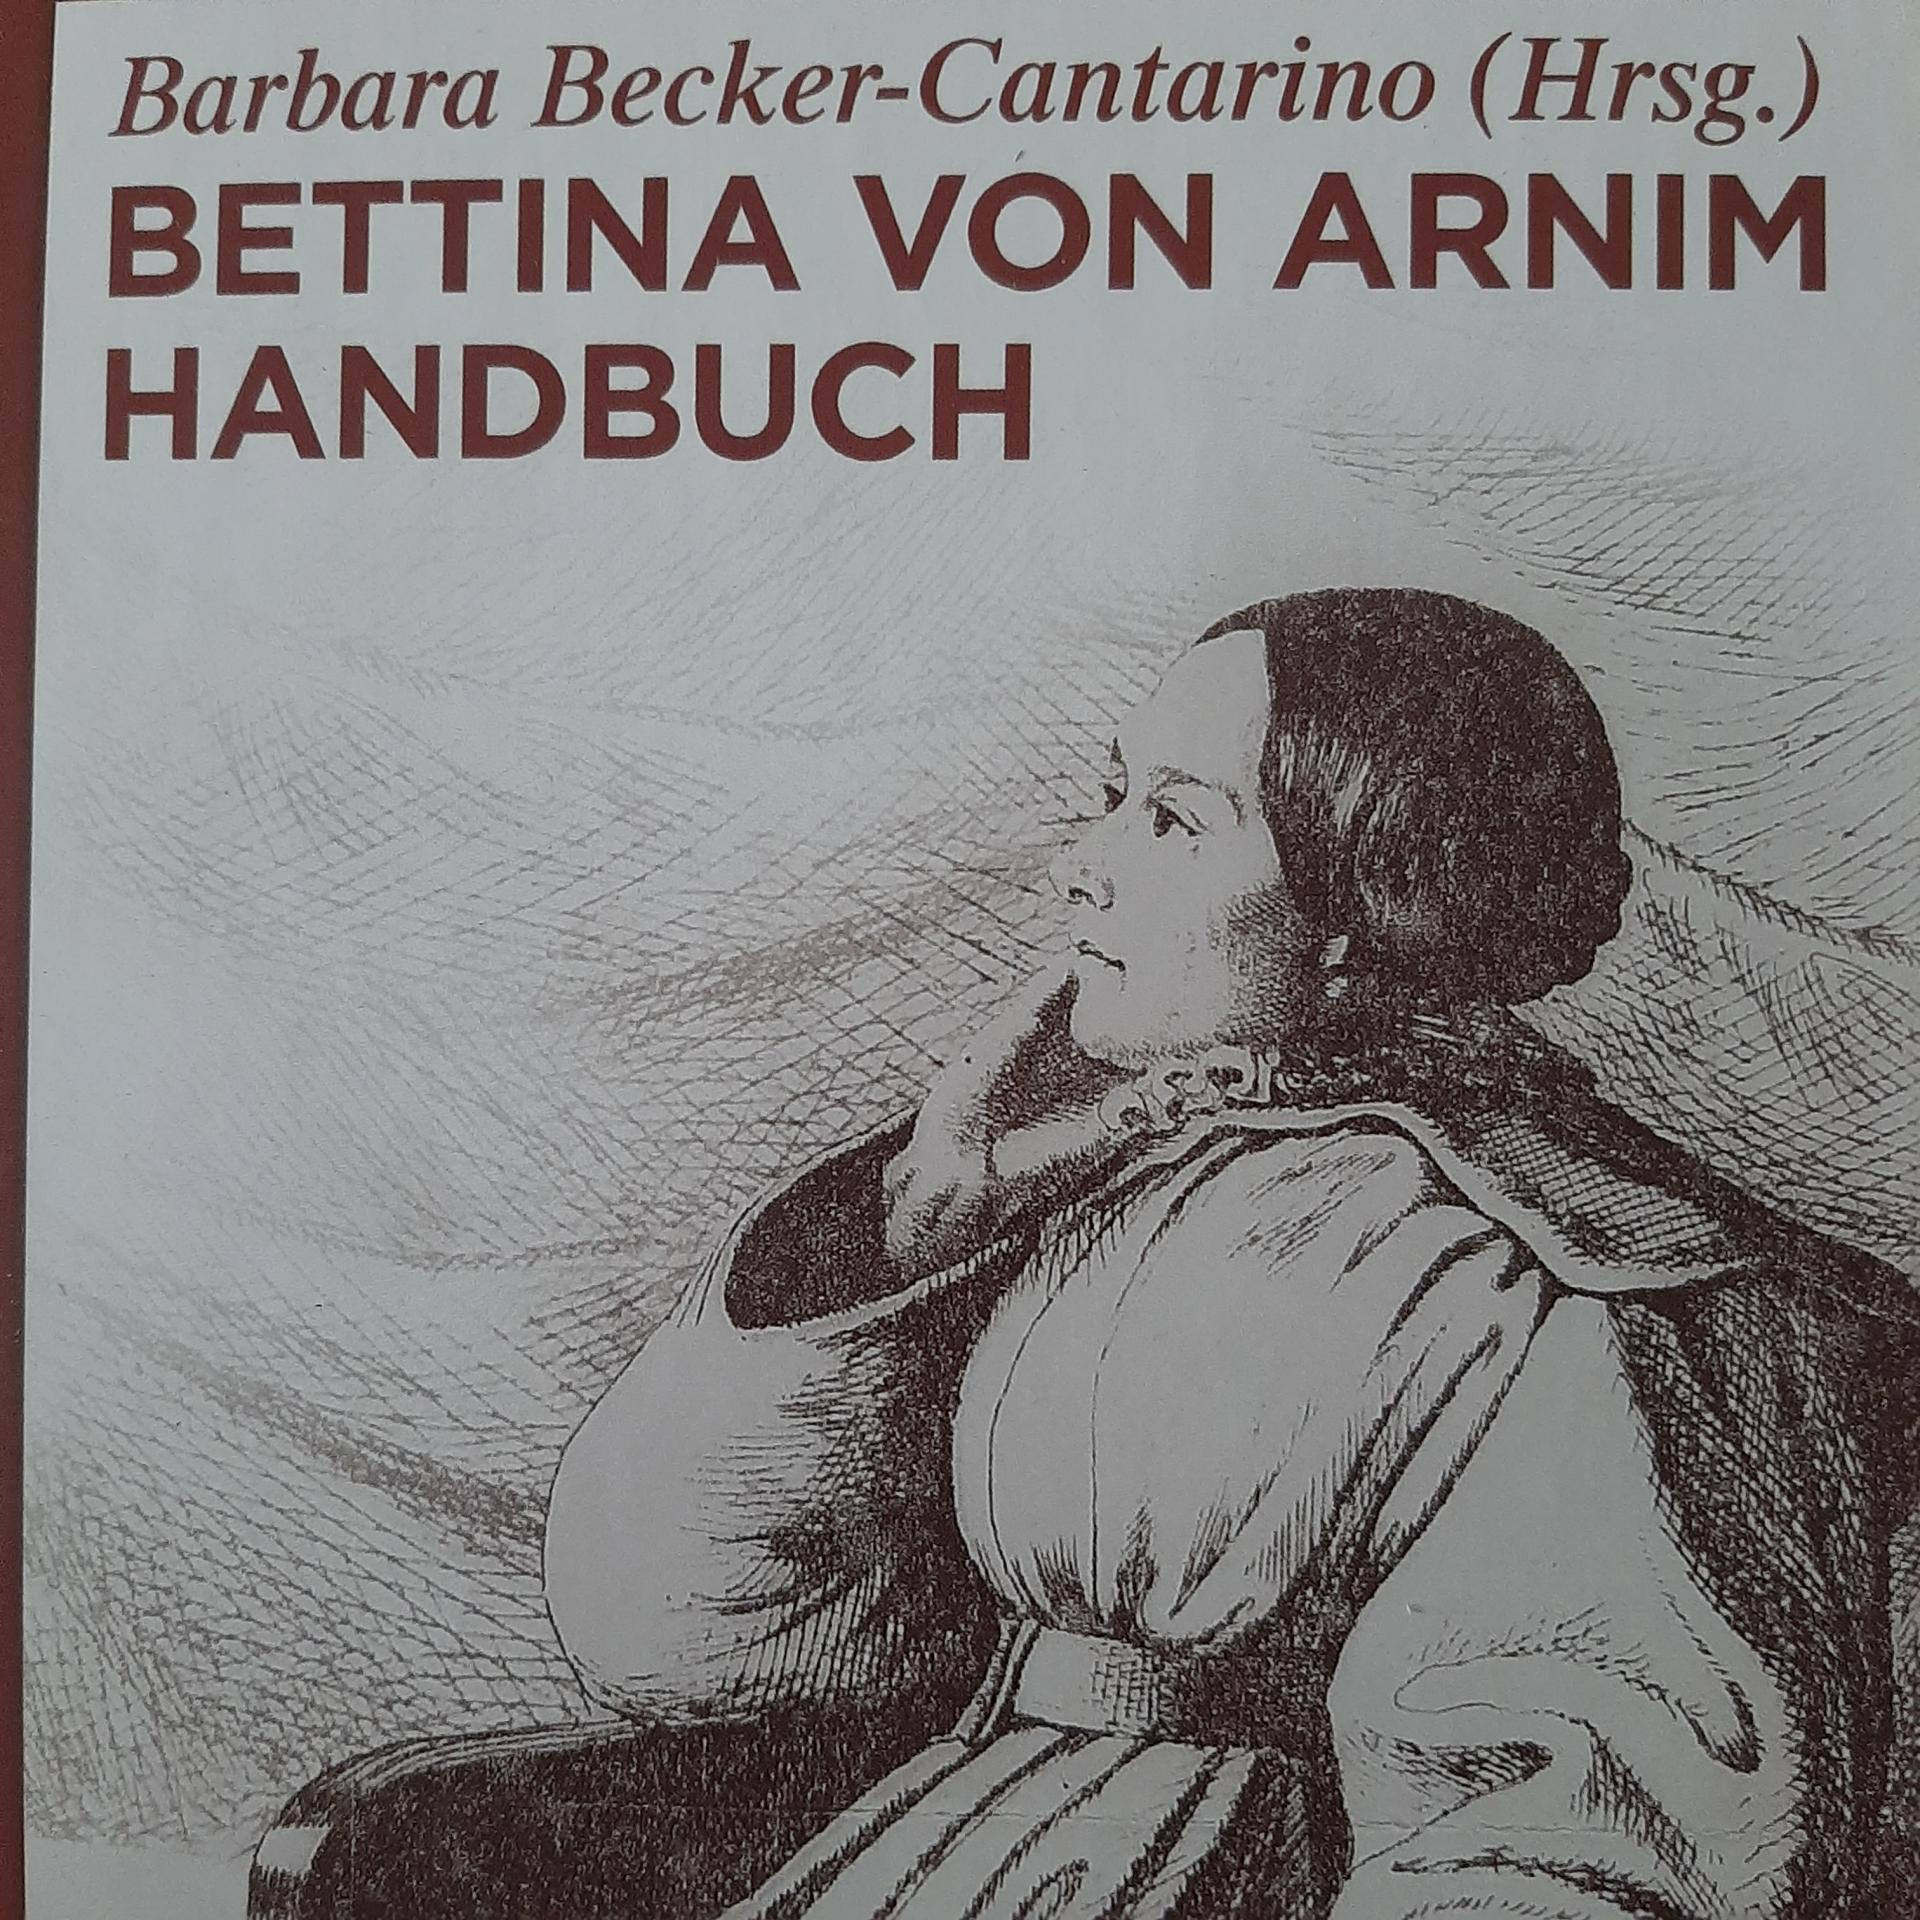 Buch Becker Catarino